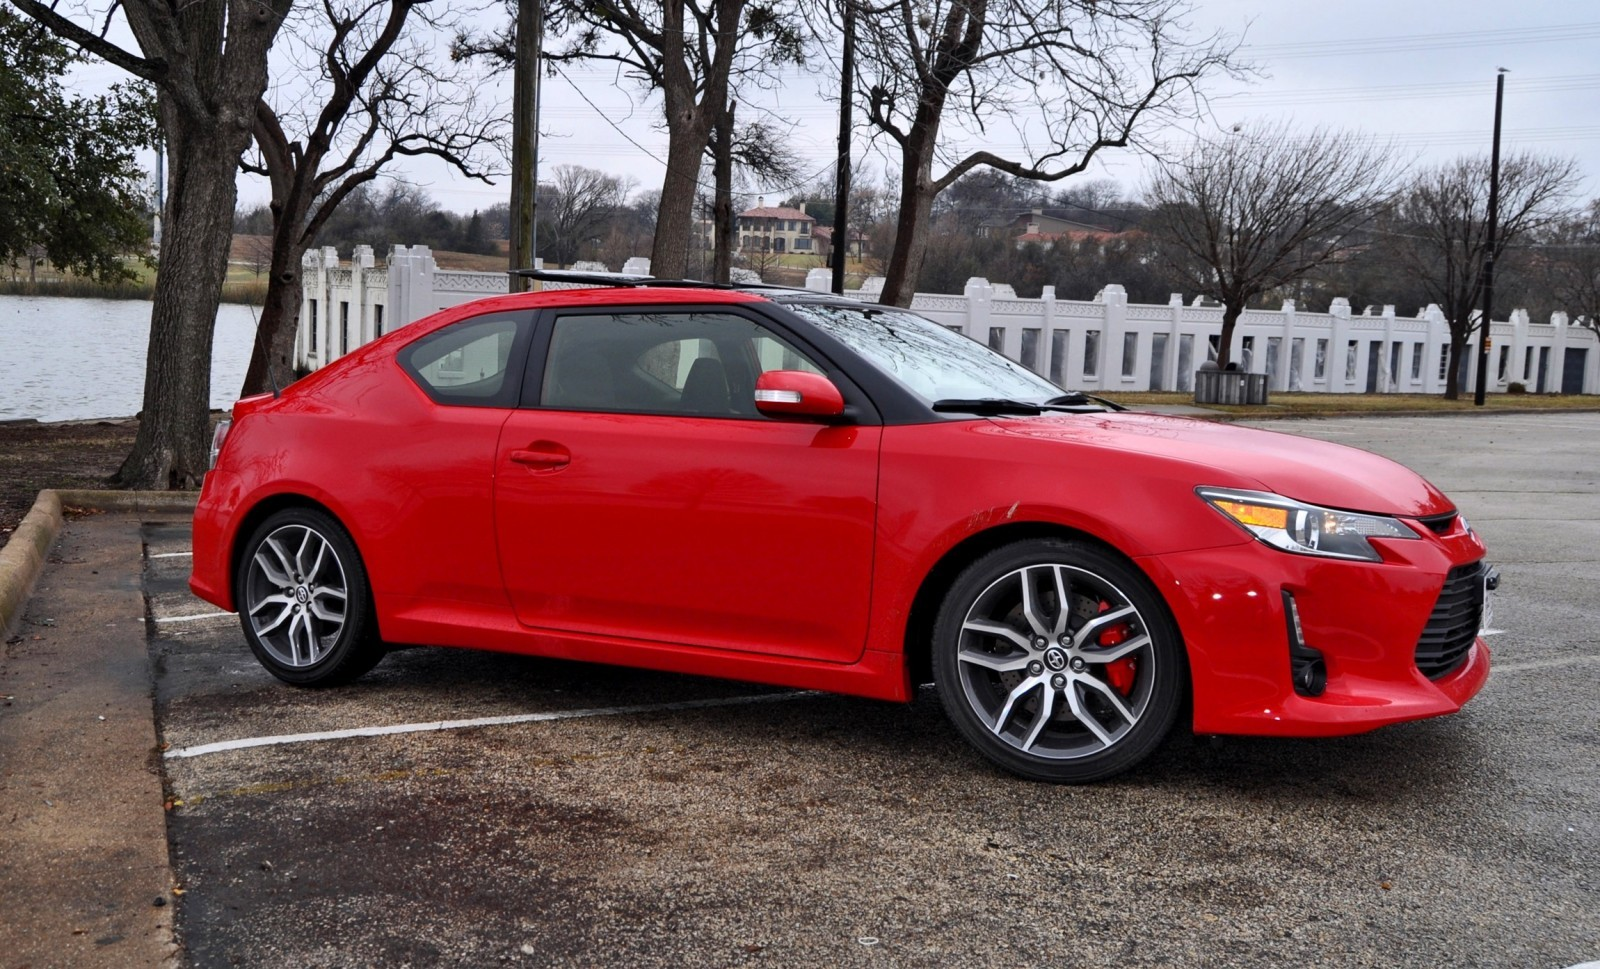 Road Test Review - 2015 Scion tC 6-Speed With TRD Performance Parts 92